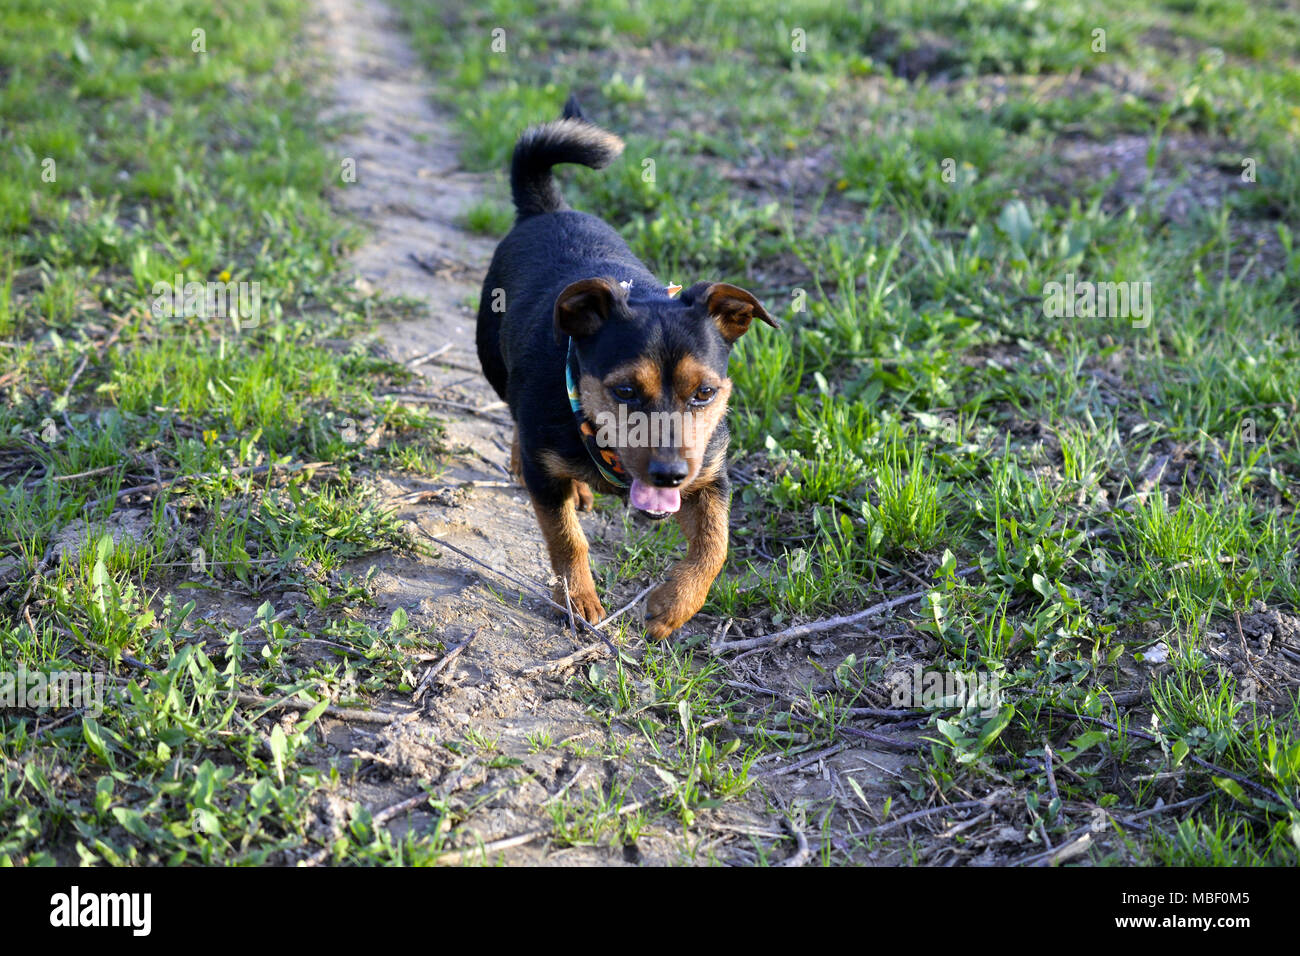 miniature pinscher dog in nature,image of a - Stock Image